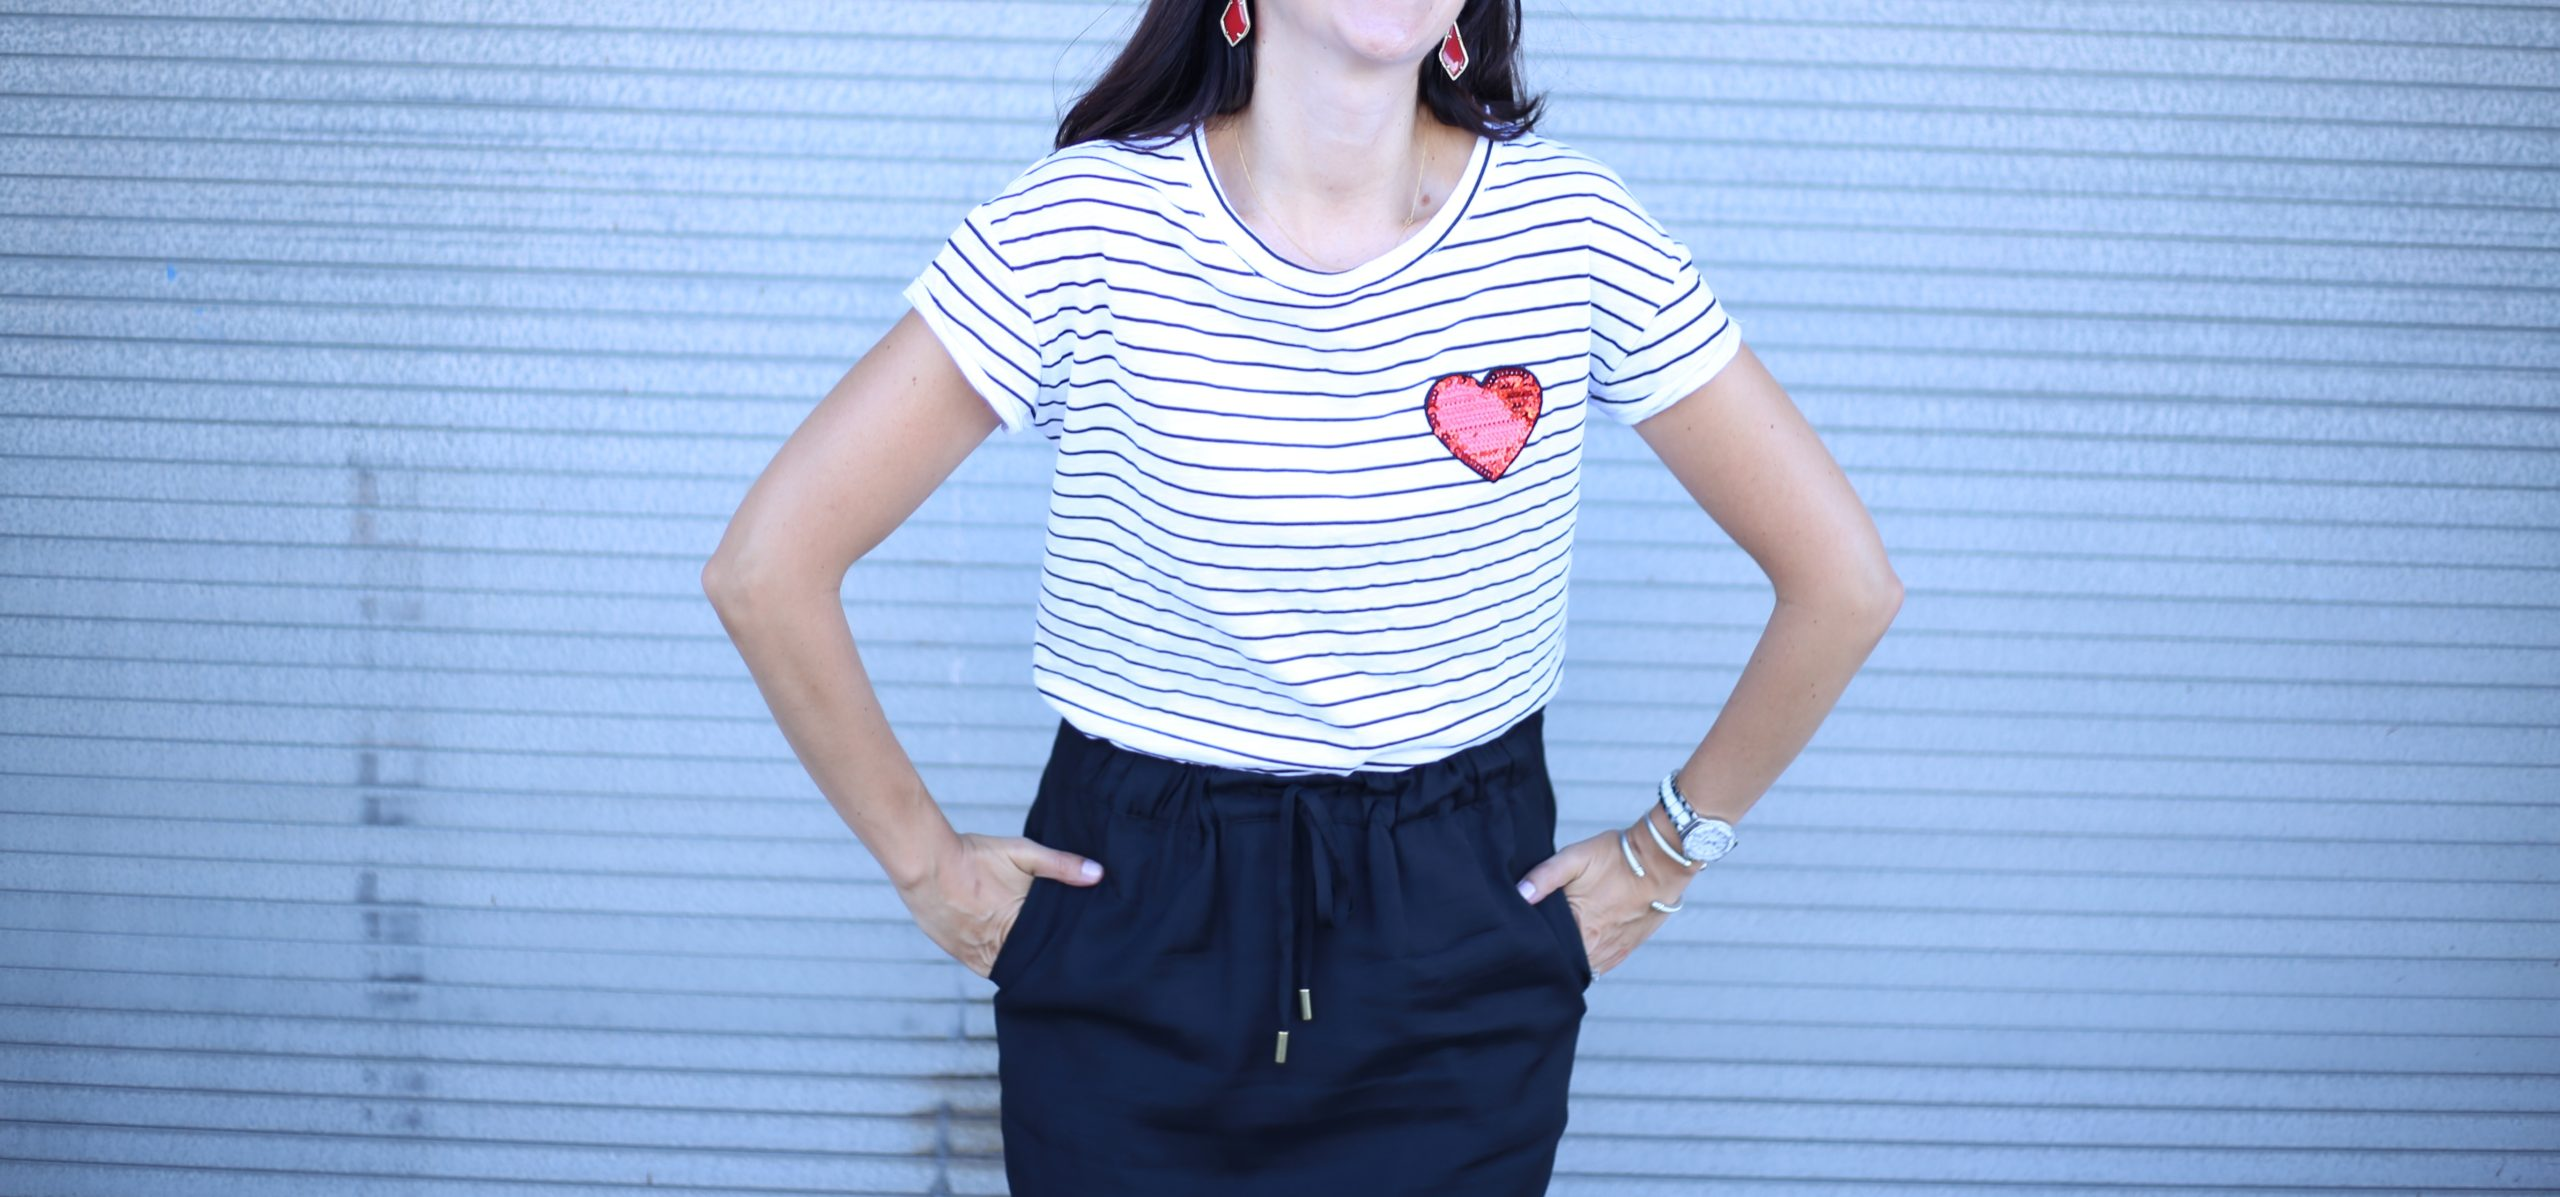 You Have My Heart – Affordable Fashion